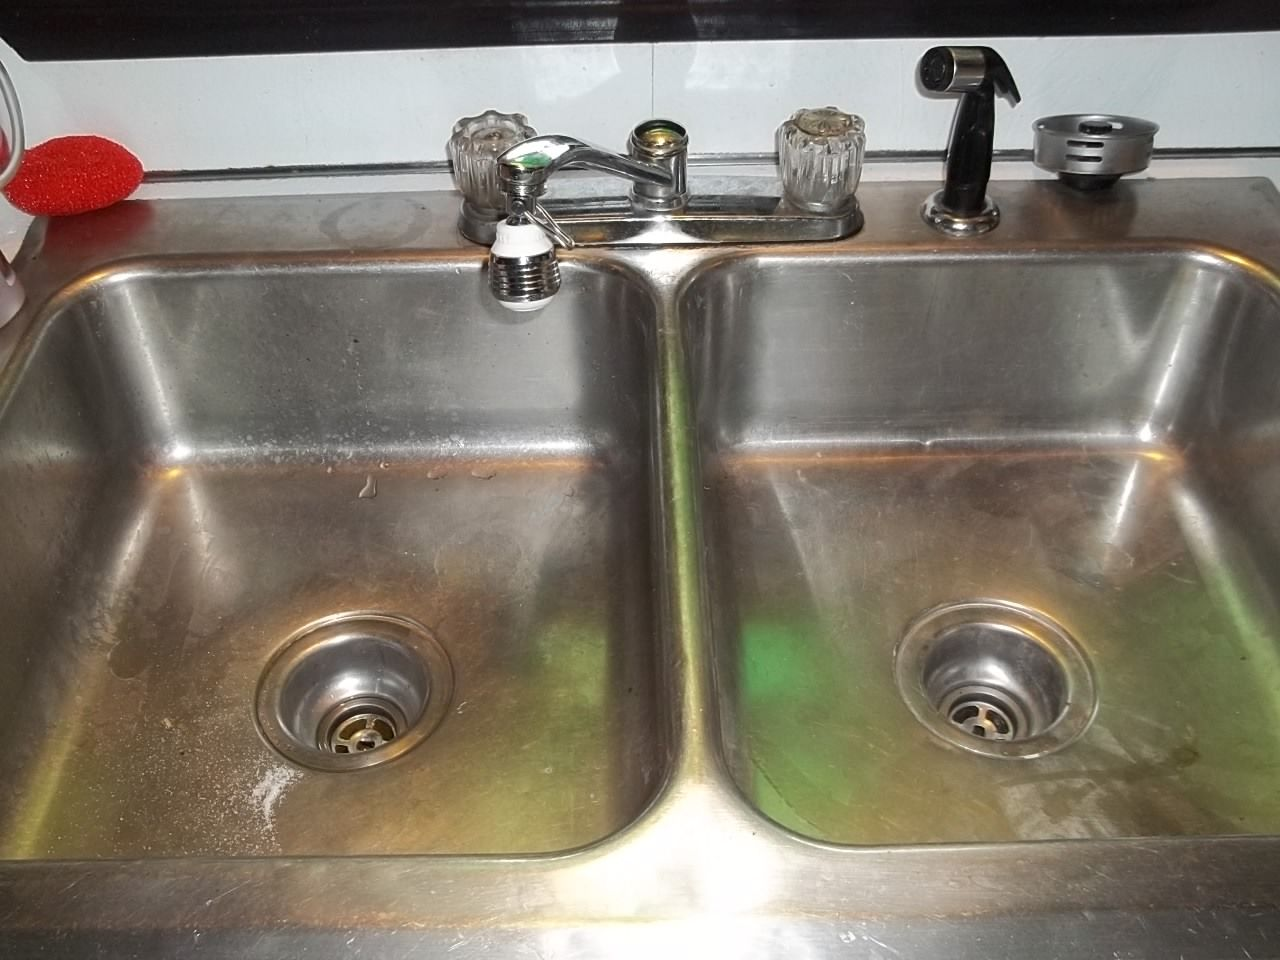 How to Unclog a Double Kitchen Sink Drain | Double kitchen sink ...